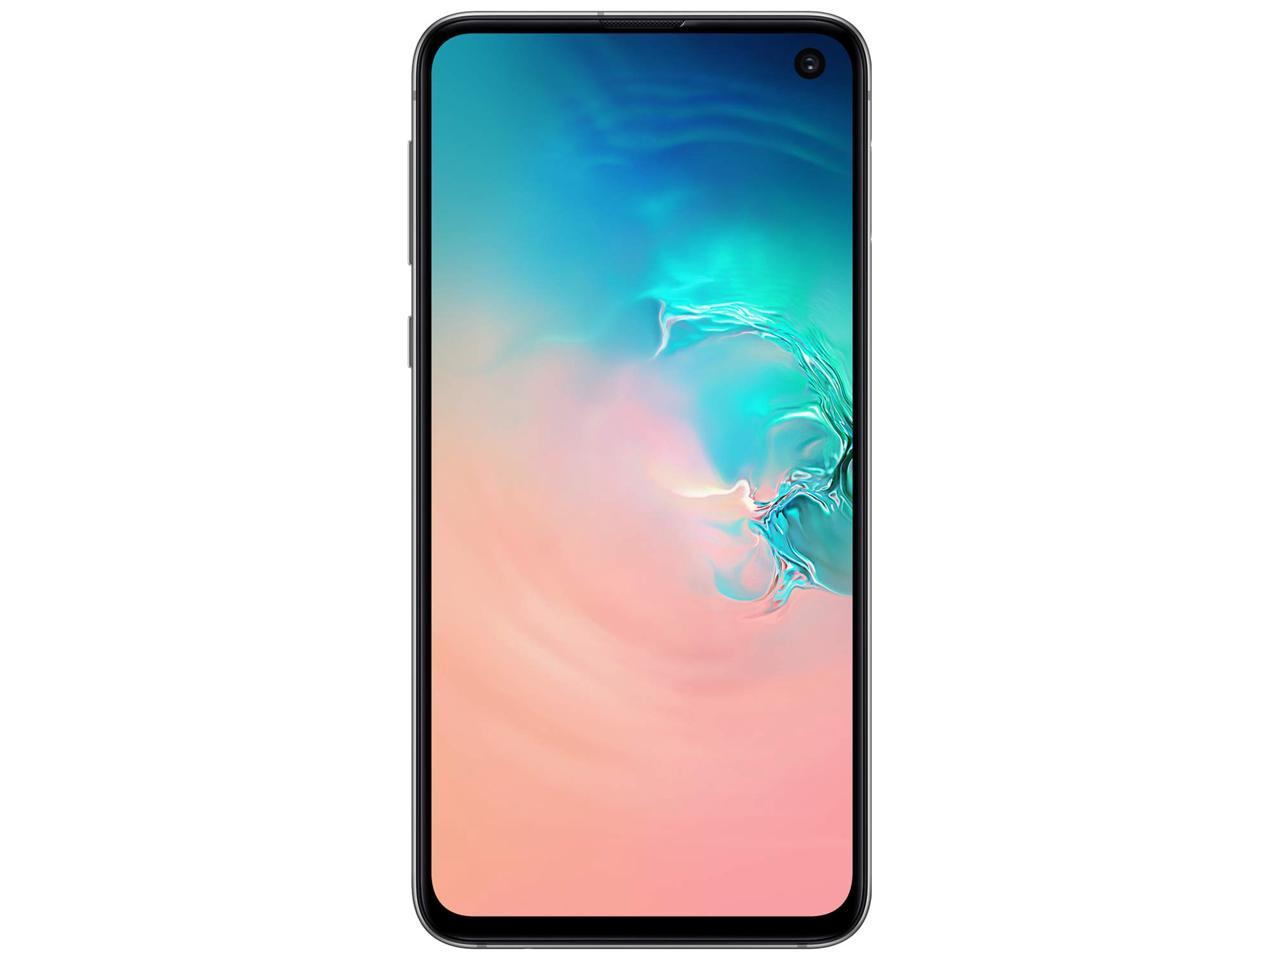 Samsung Galaxy S10e 128GB SM-G970F/DS Hybrid/Dual-SIM (GSM Only, No CDMA) Factory Unlocked 4G/LTE Smartphone - International Version No Warranty (Prism White)